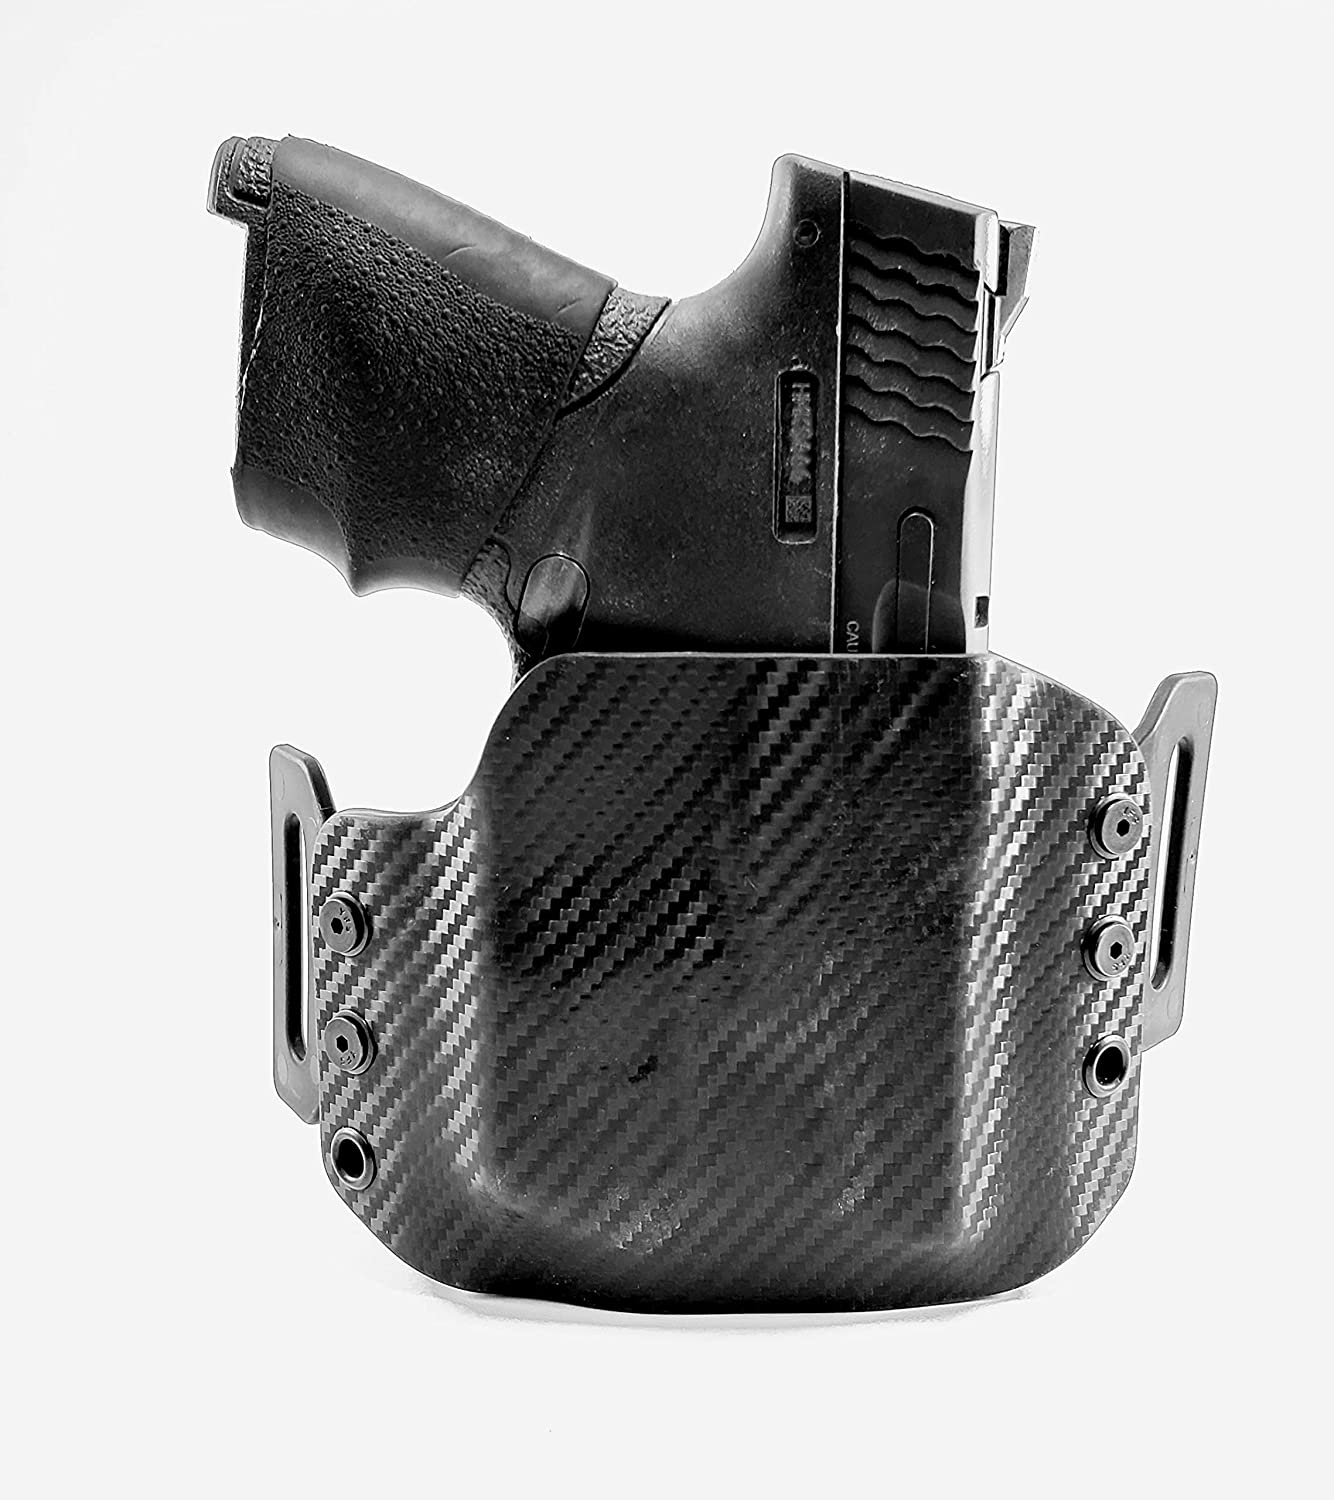 Tru-Fit Tactical OWB Kydex Max 42% OFF Oakland Mall Gun Holster for Carbon Stream Black